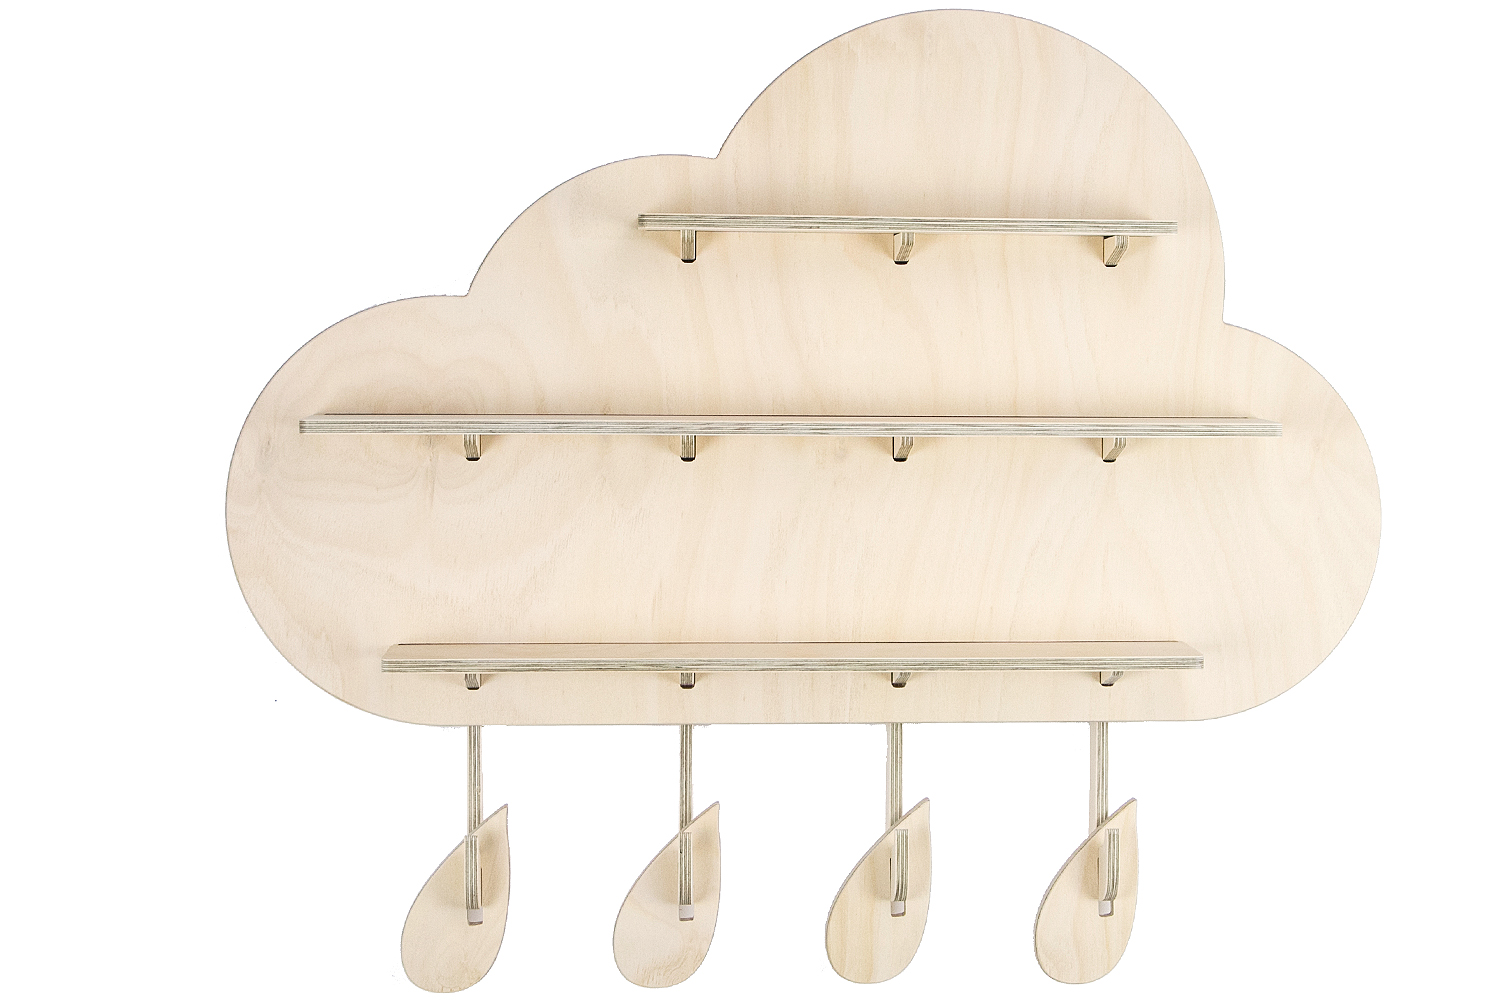 Rainy-cloud-treasure-board